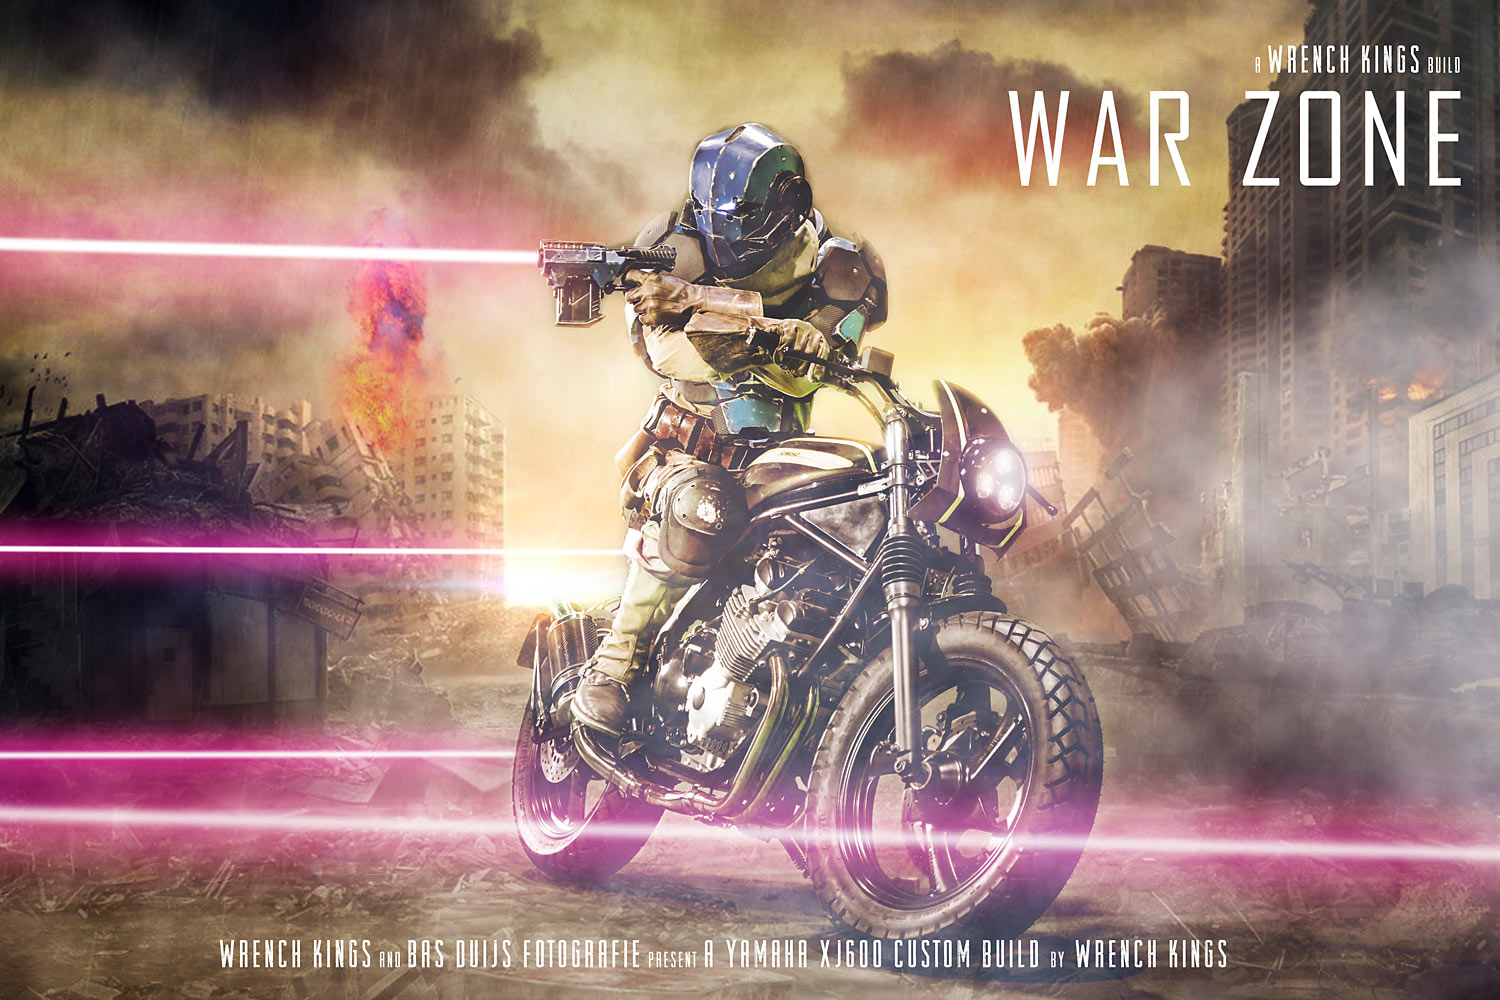 Wrench Kings unveils 'War Zone' project - a battle-ready Yamaha XJ600 Diversion